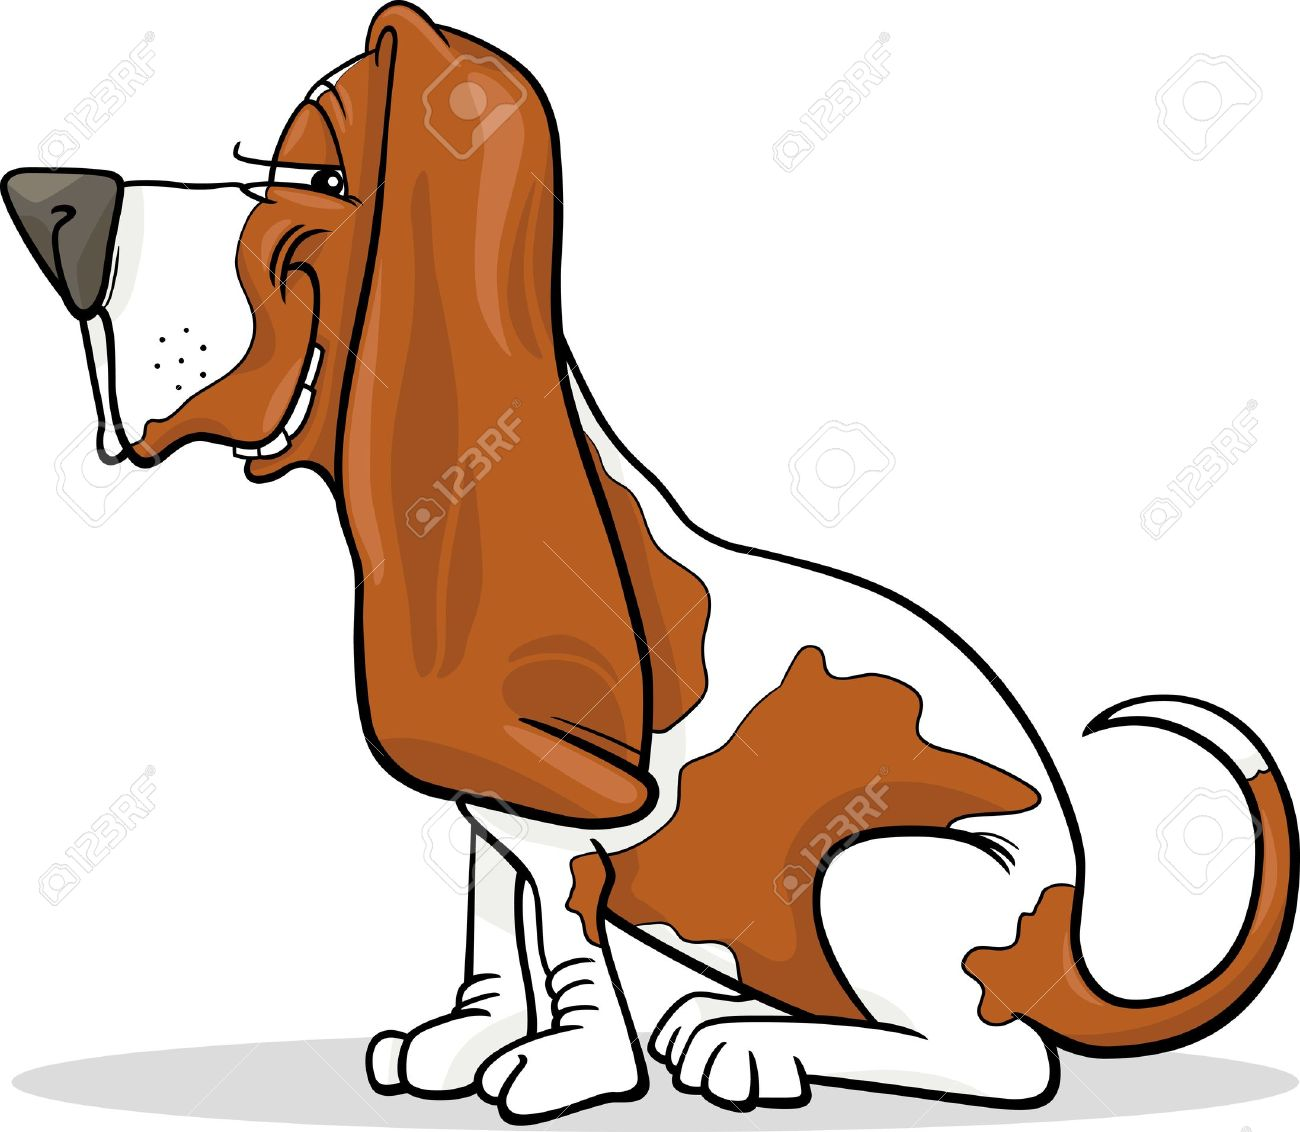 Cartoon Illustration Of Funny Purebred Spotted Basset Hound Dog.